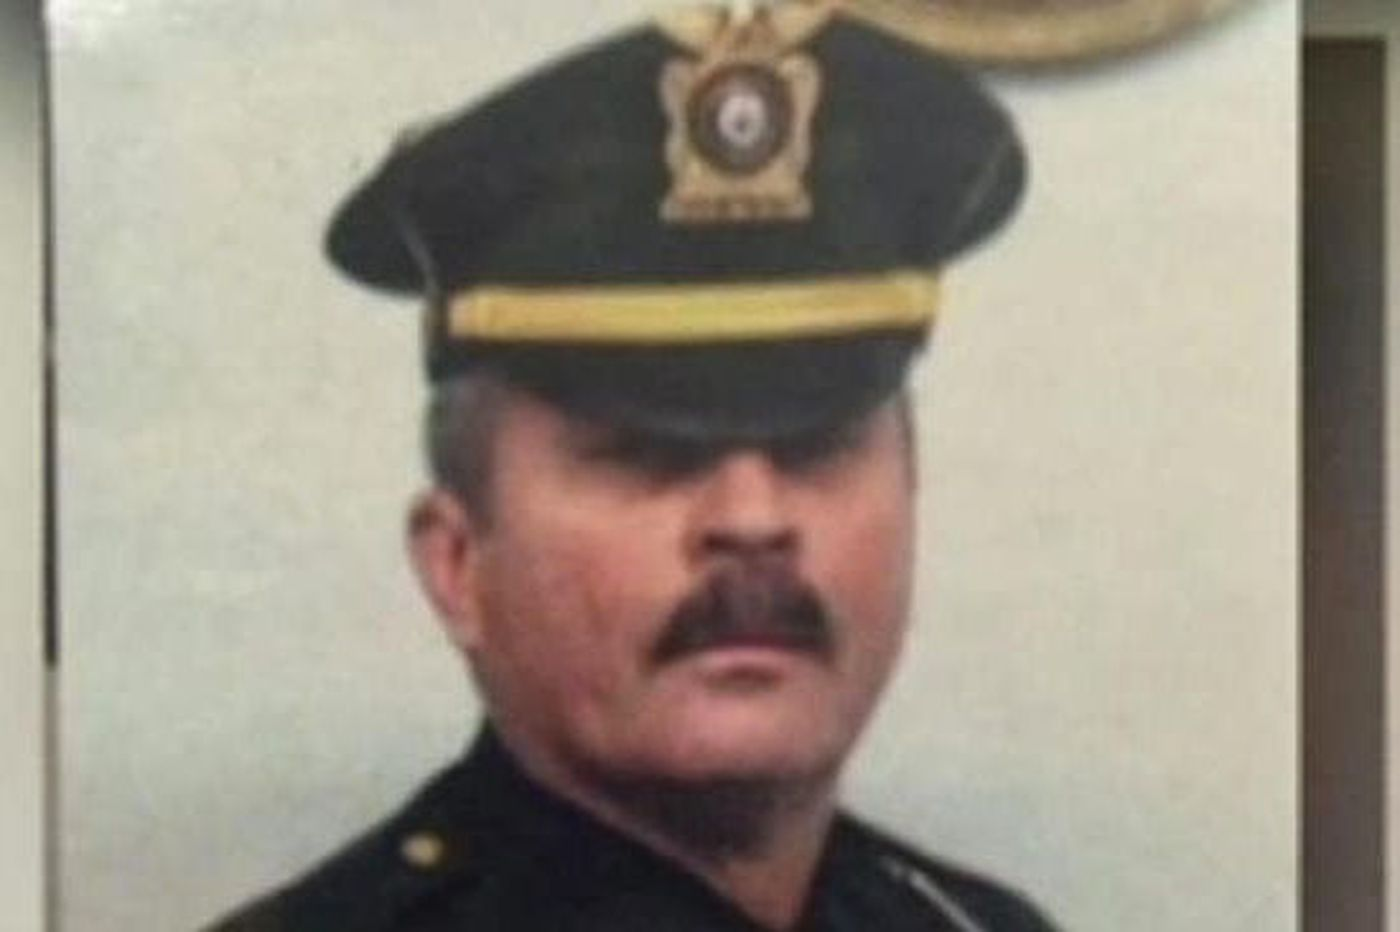 Racist allegations against former Bordentown police chief puts township under cloud | Jenice Armstrong